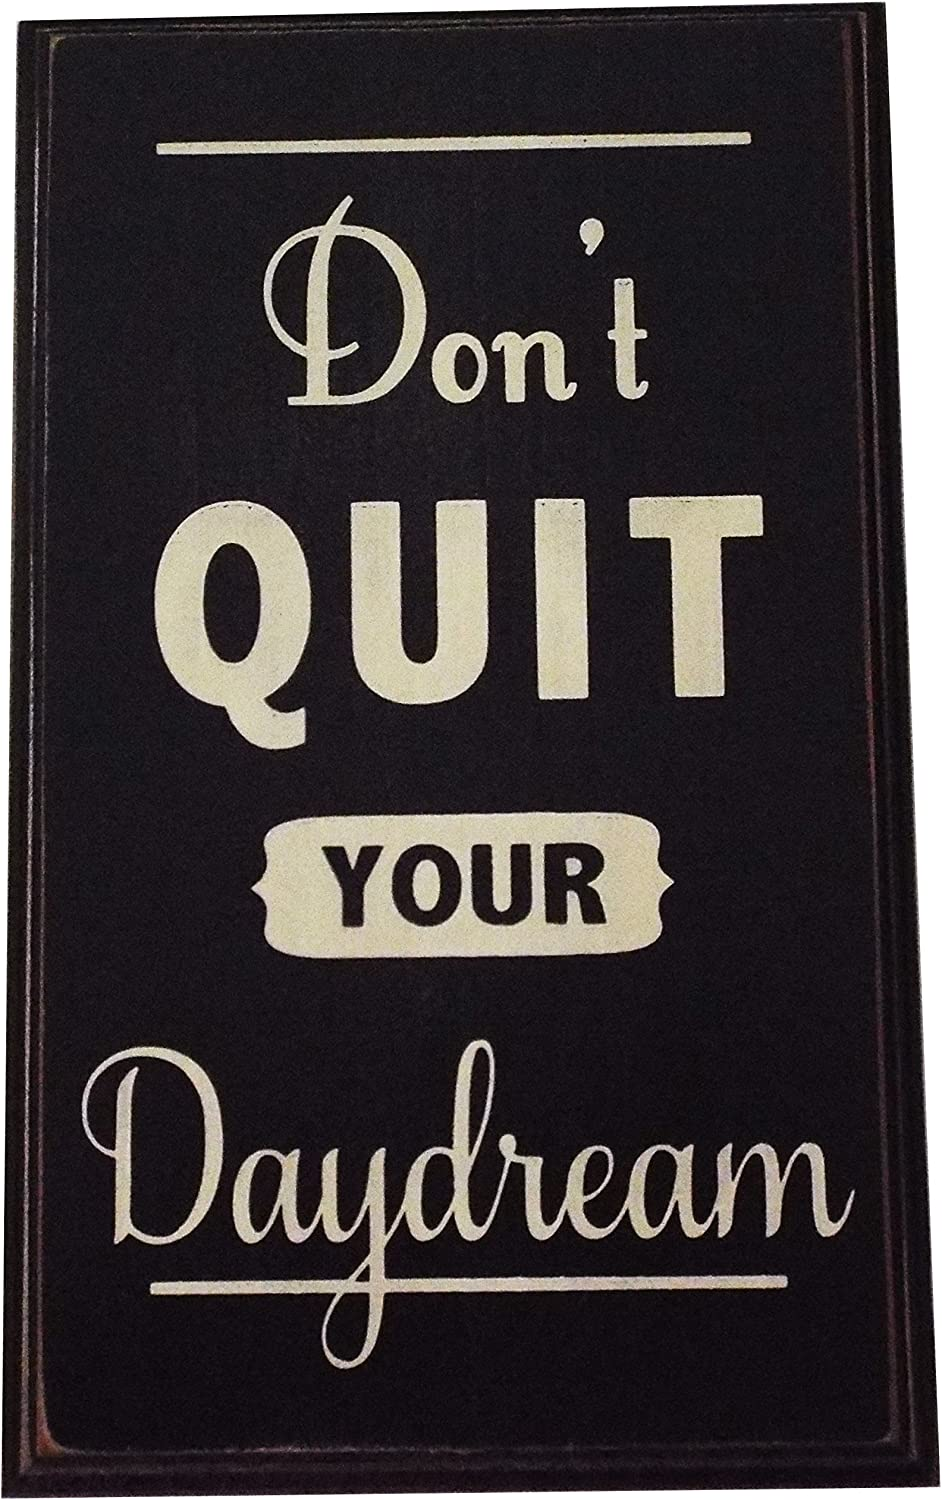 Don't Quit Your Daydream Wood Sign for Home Wall Decor -- PERFECT FUNNY QUOTES GIFT!